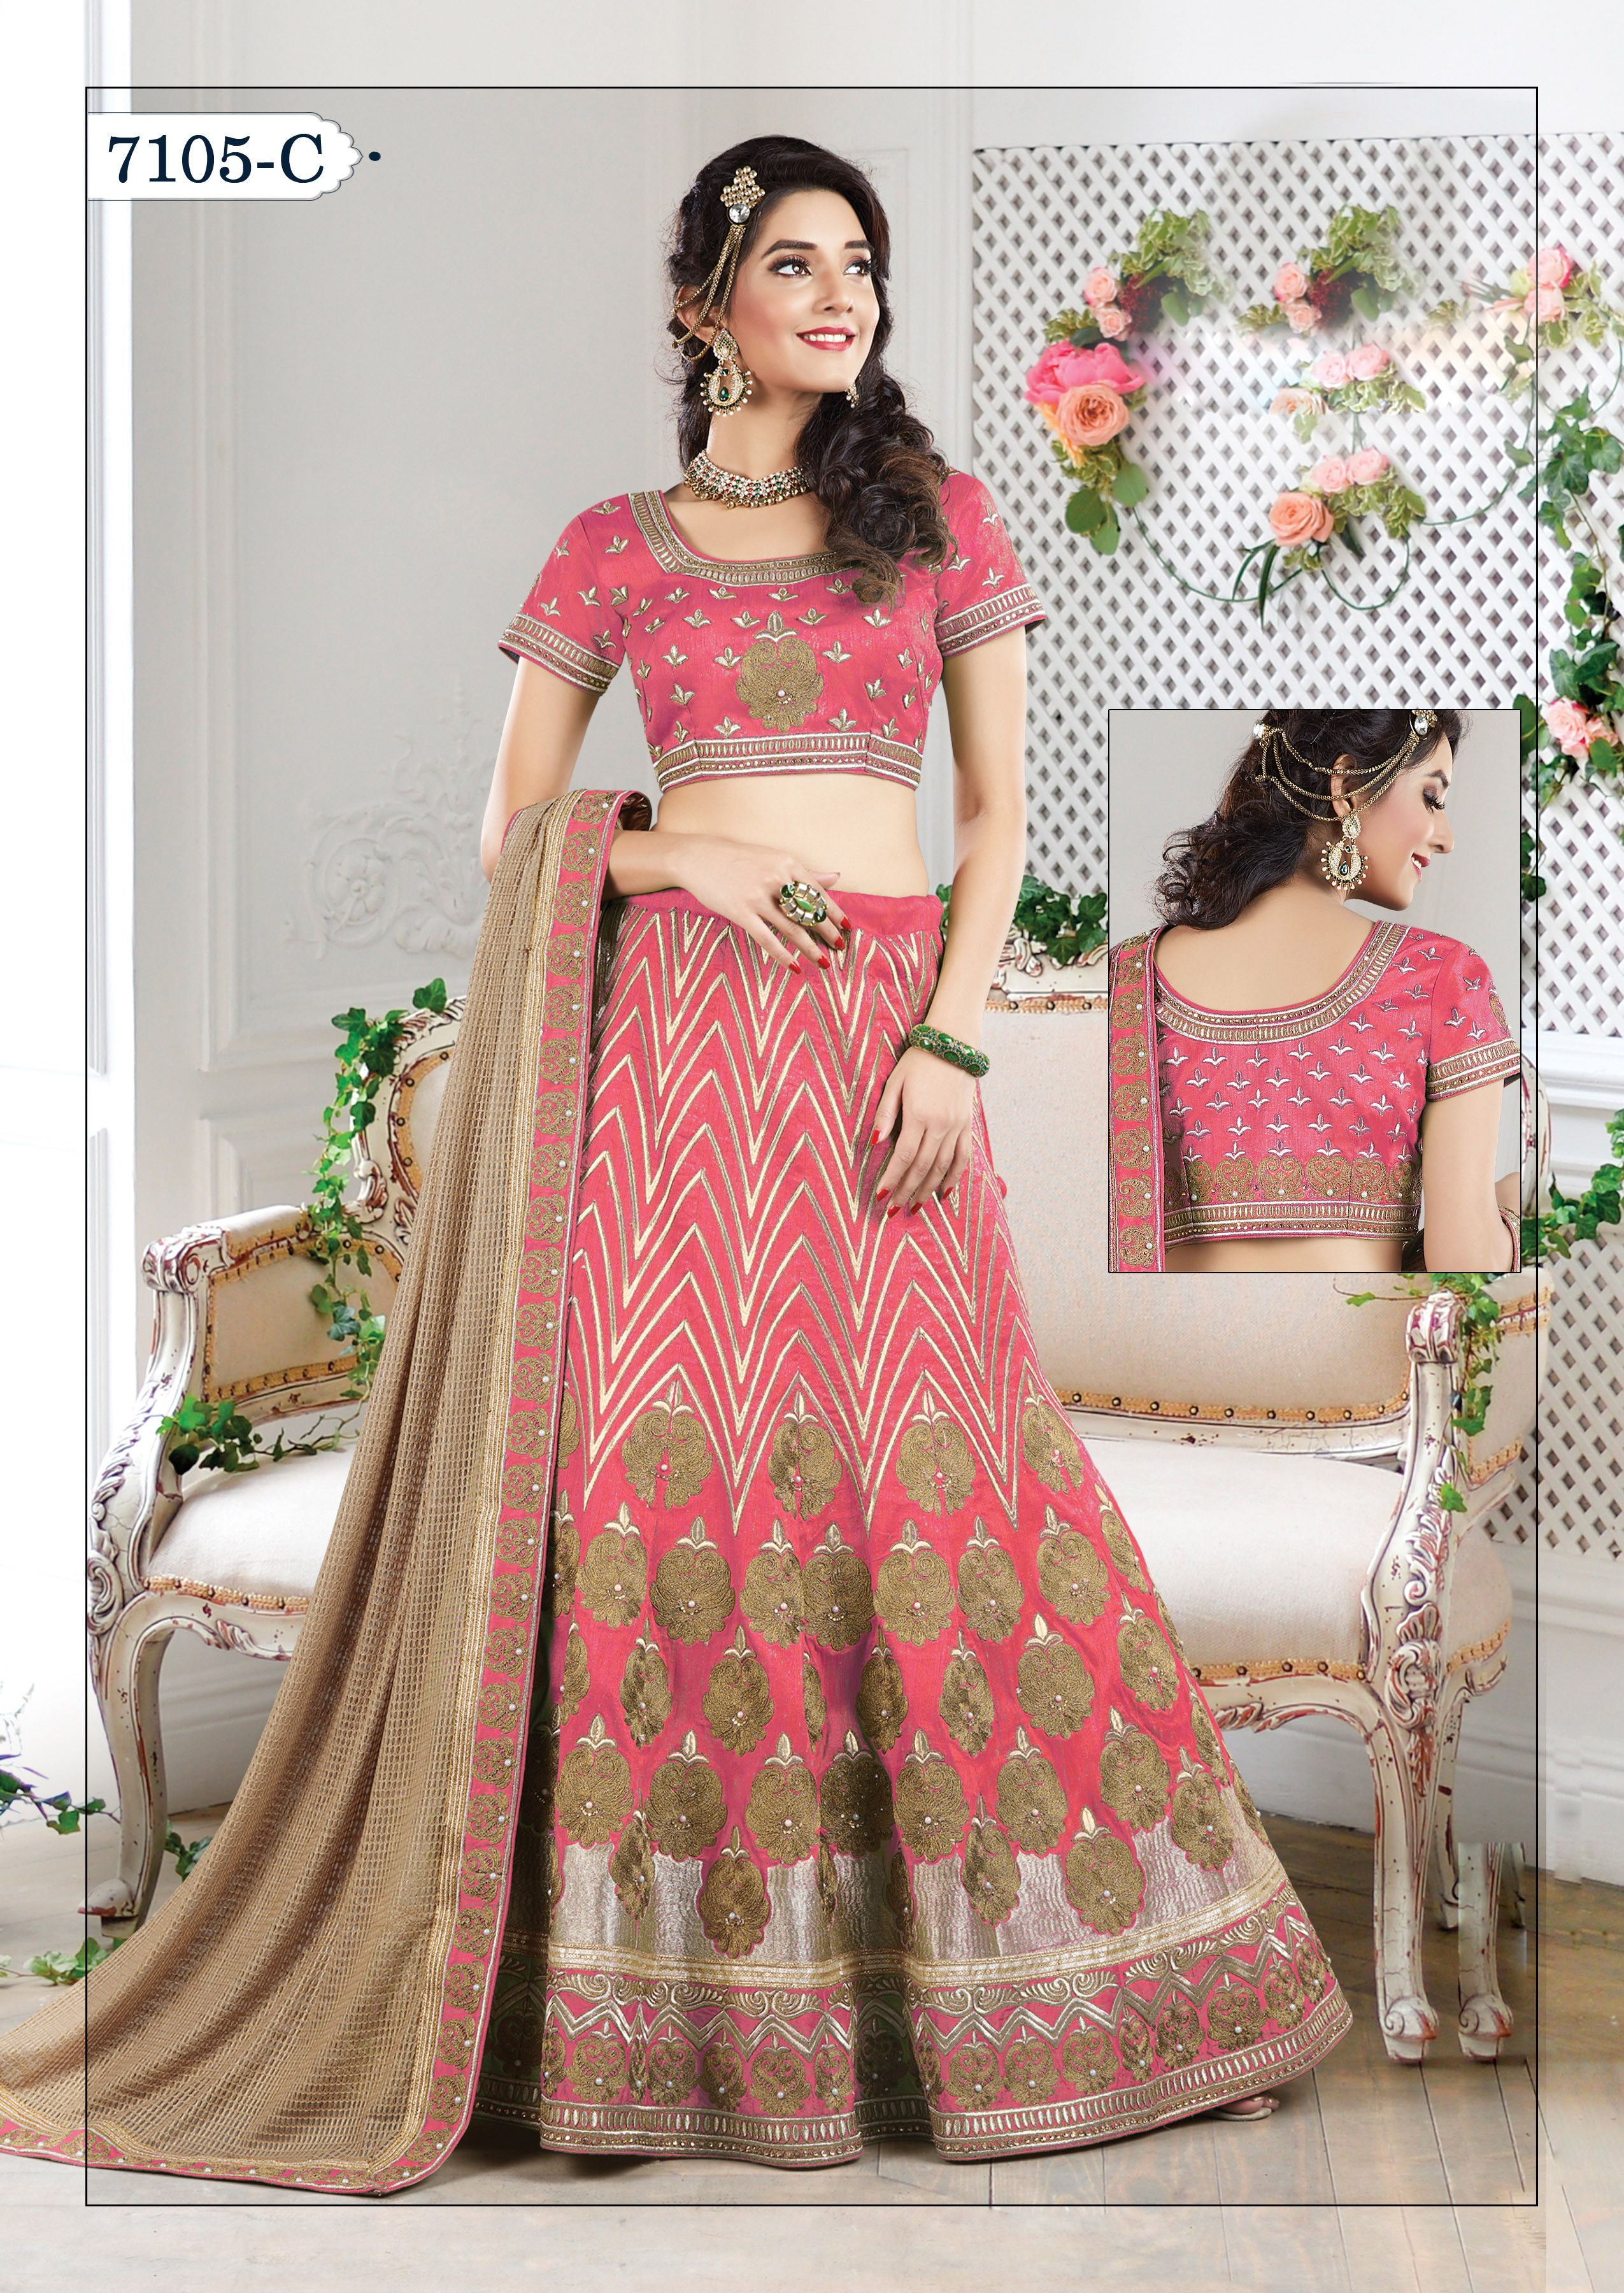 66796b2996e417 ... #WorldwideShipping #online #shopping Shop on international.banglewale.com,Designer  Indian Dresses,gowns,lehenga and sarees , Buy Online in USD 181.05